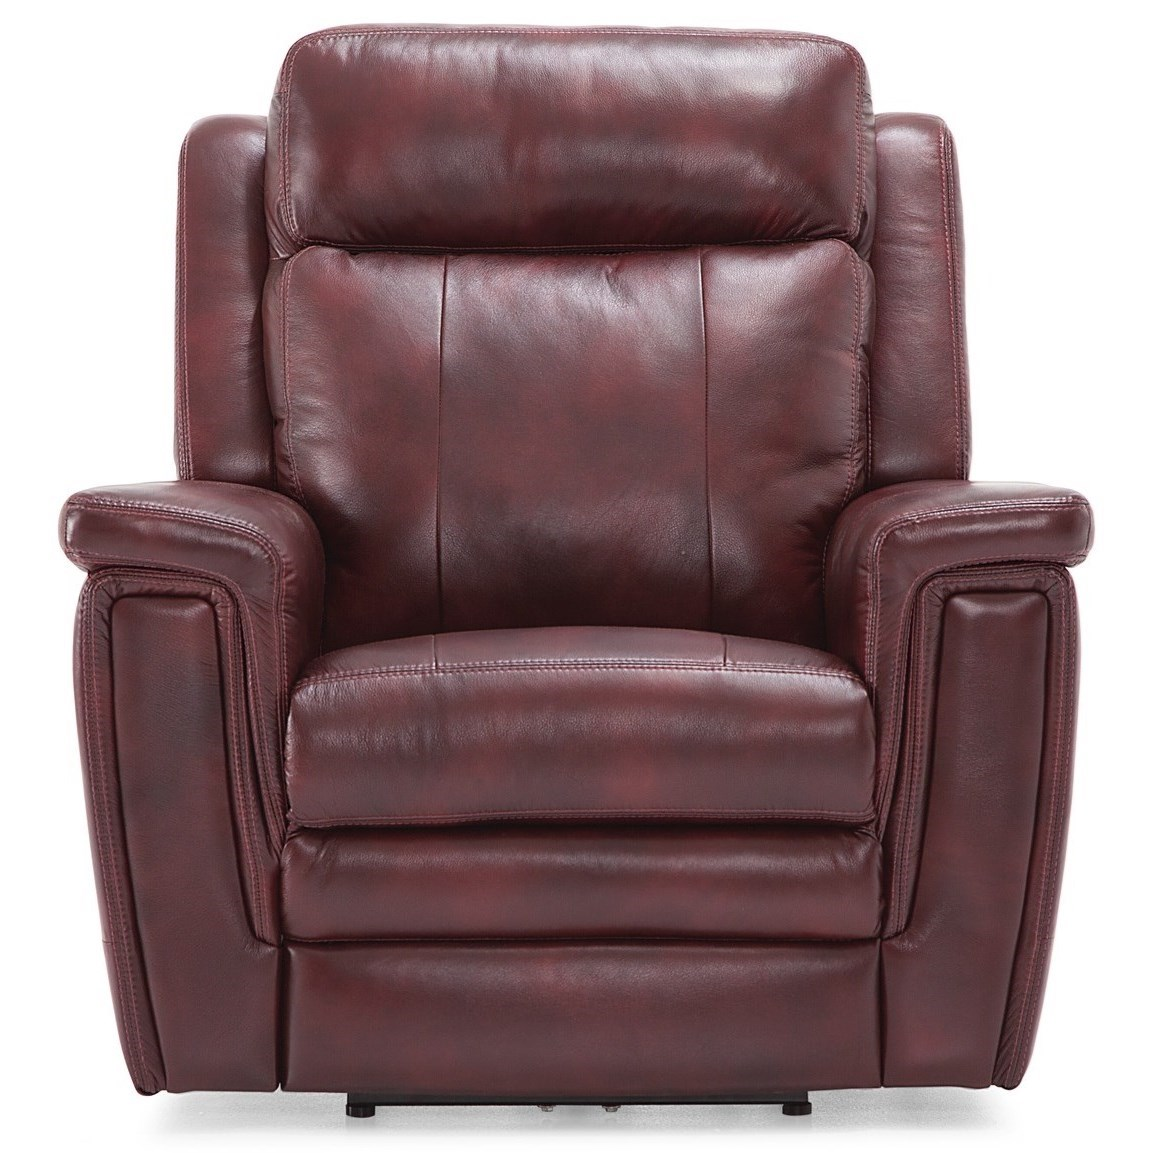 Wallhugger Power Recliner w/ Power HR